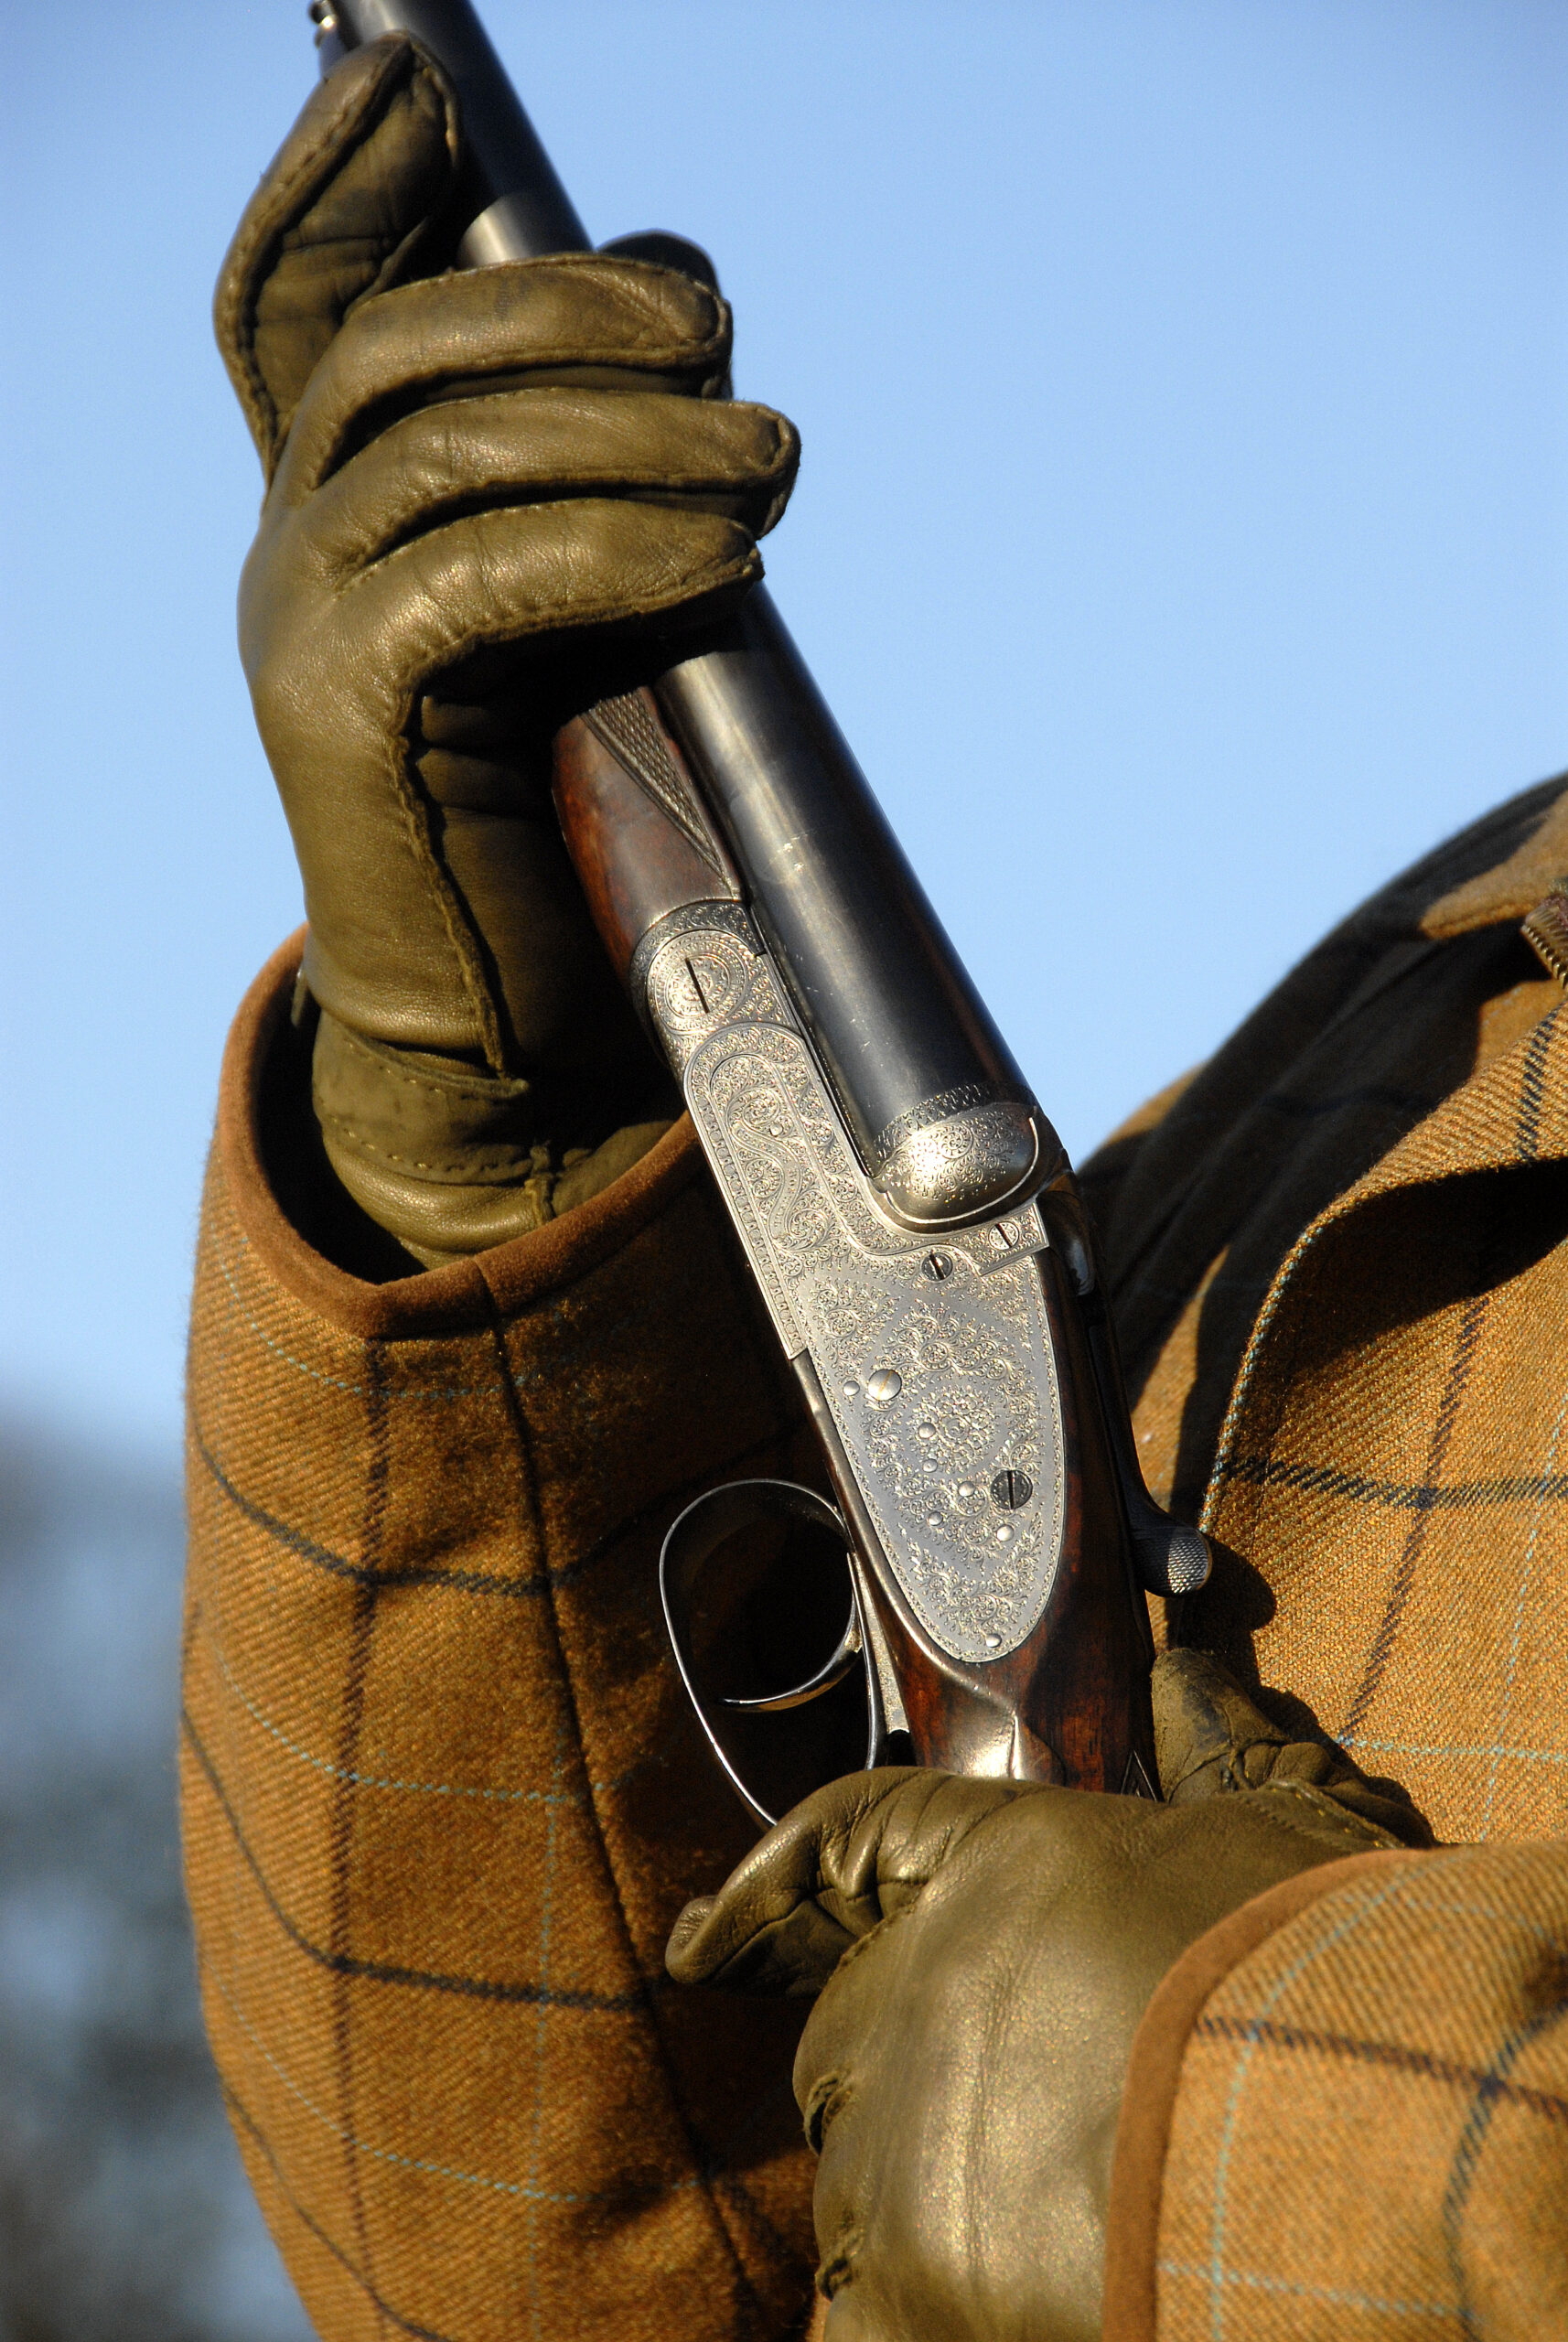 person with shotgun leather gloves | shotgun and firearms applications and renewals medical reports | Shotgun Medicals